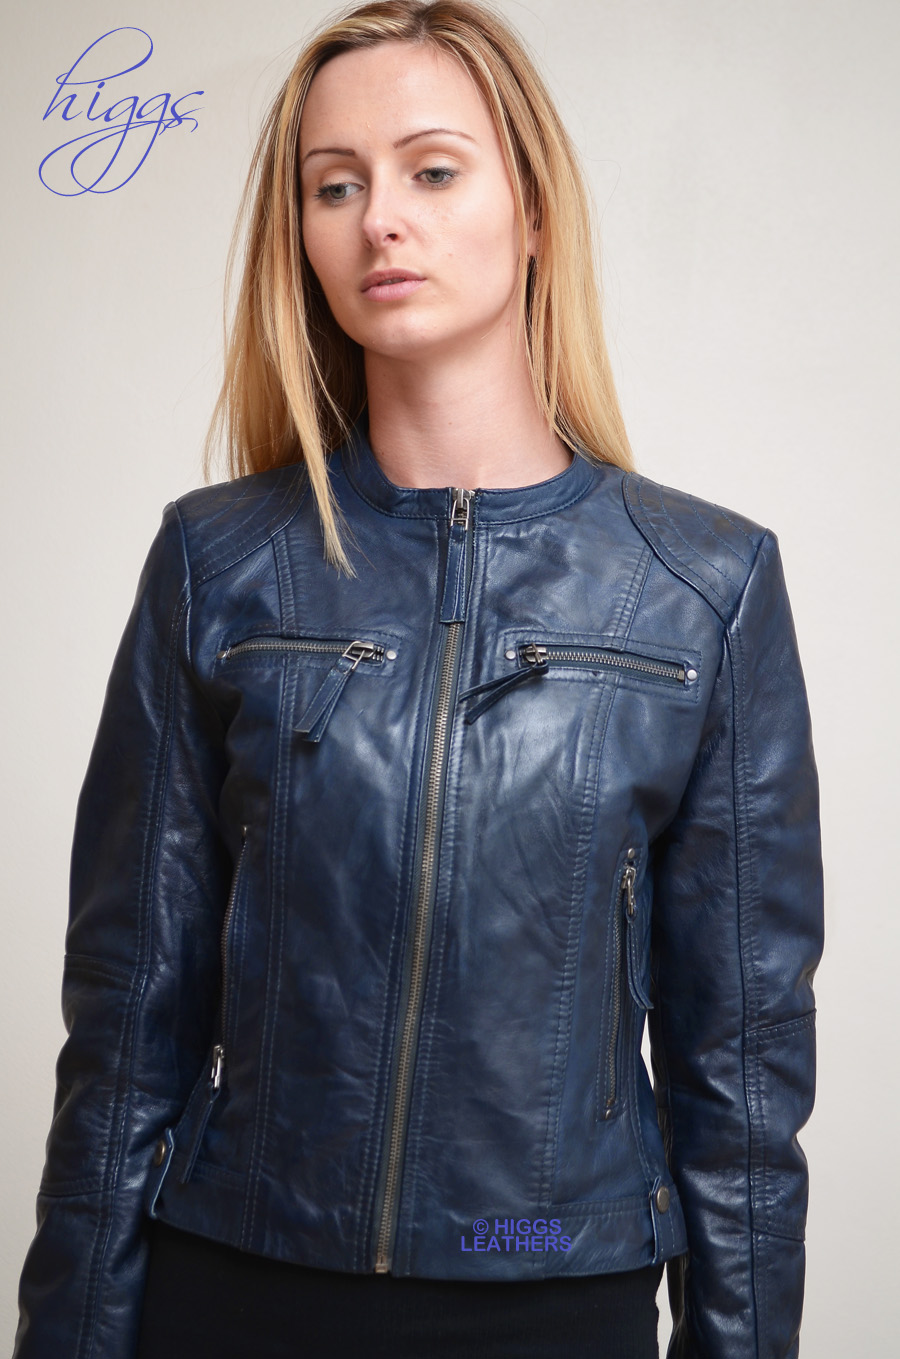 Cheap leather jackets from Higgs. We have one of the finest ...